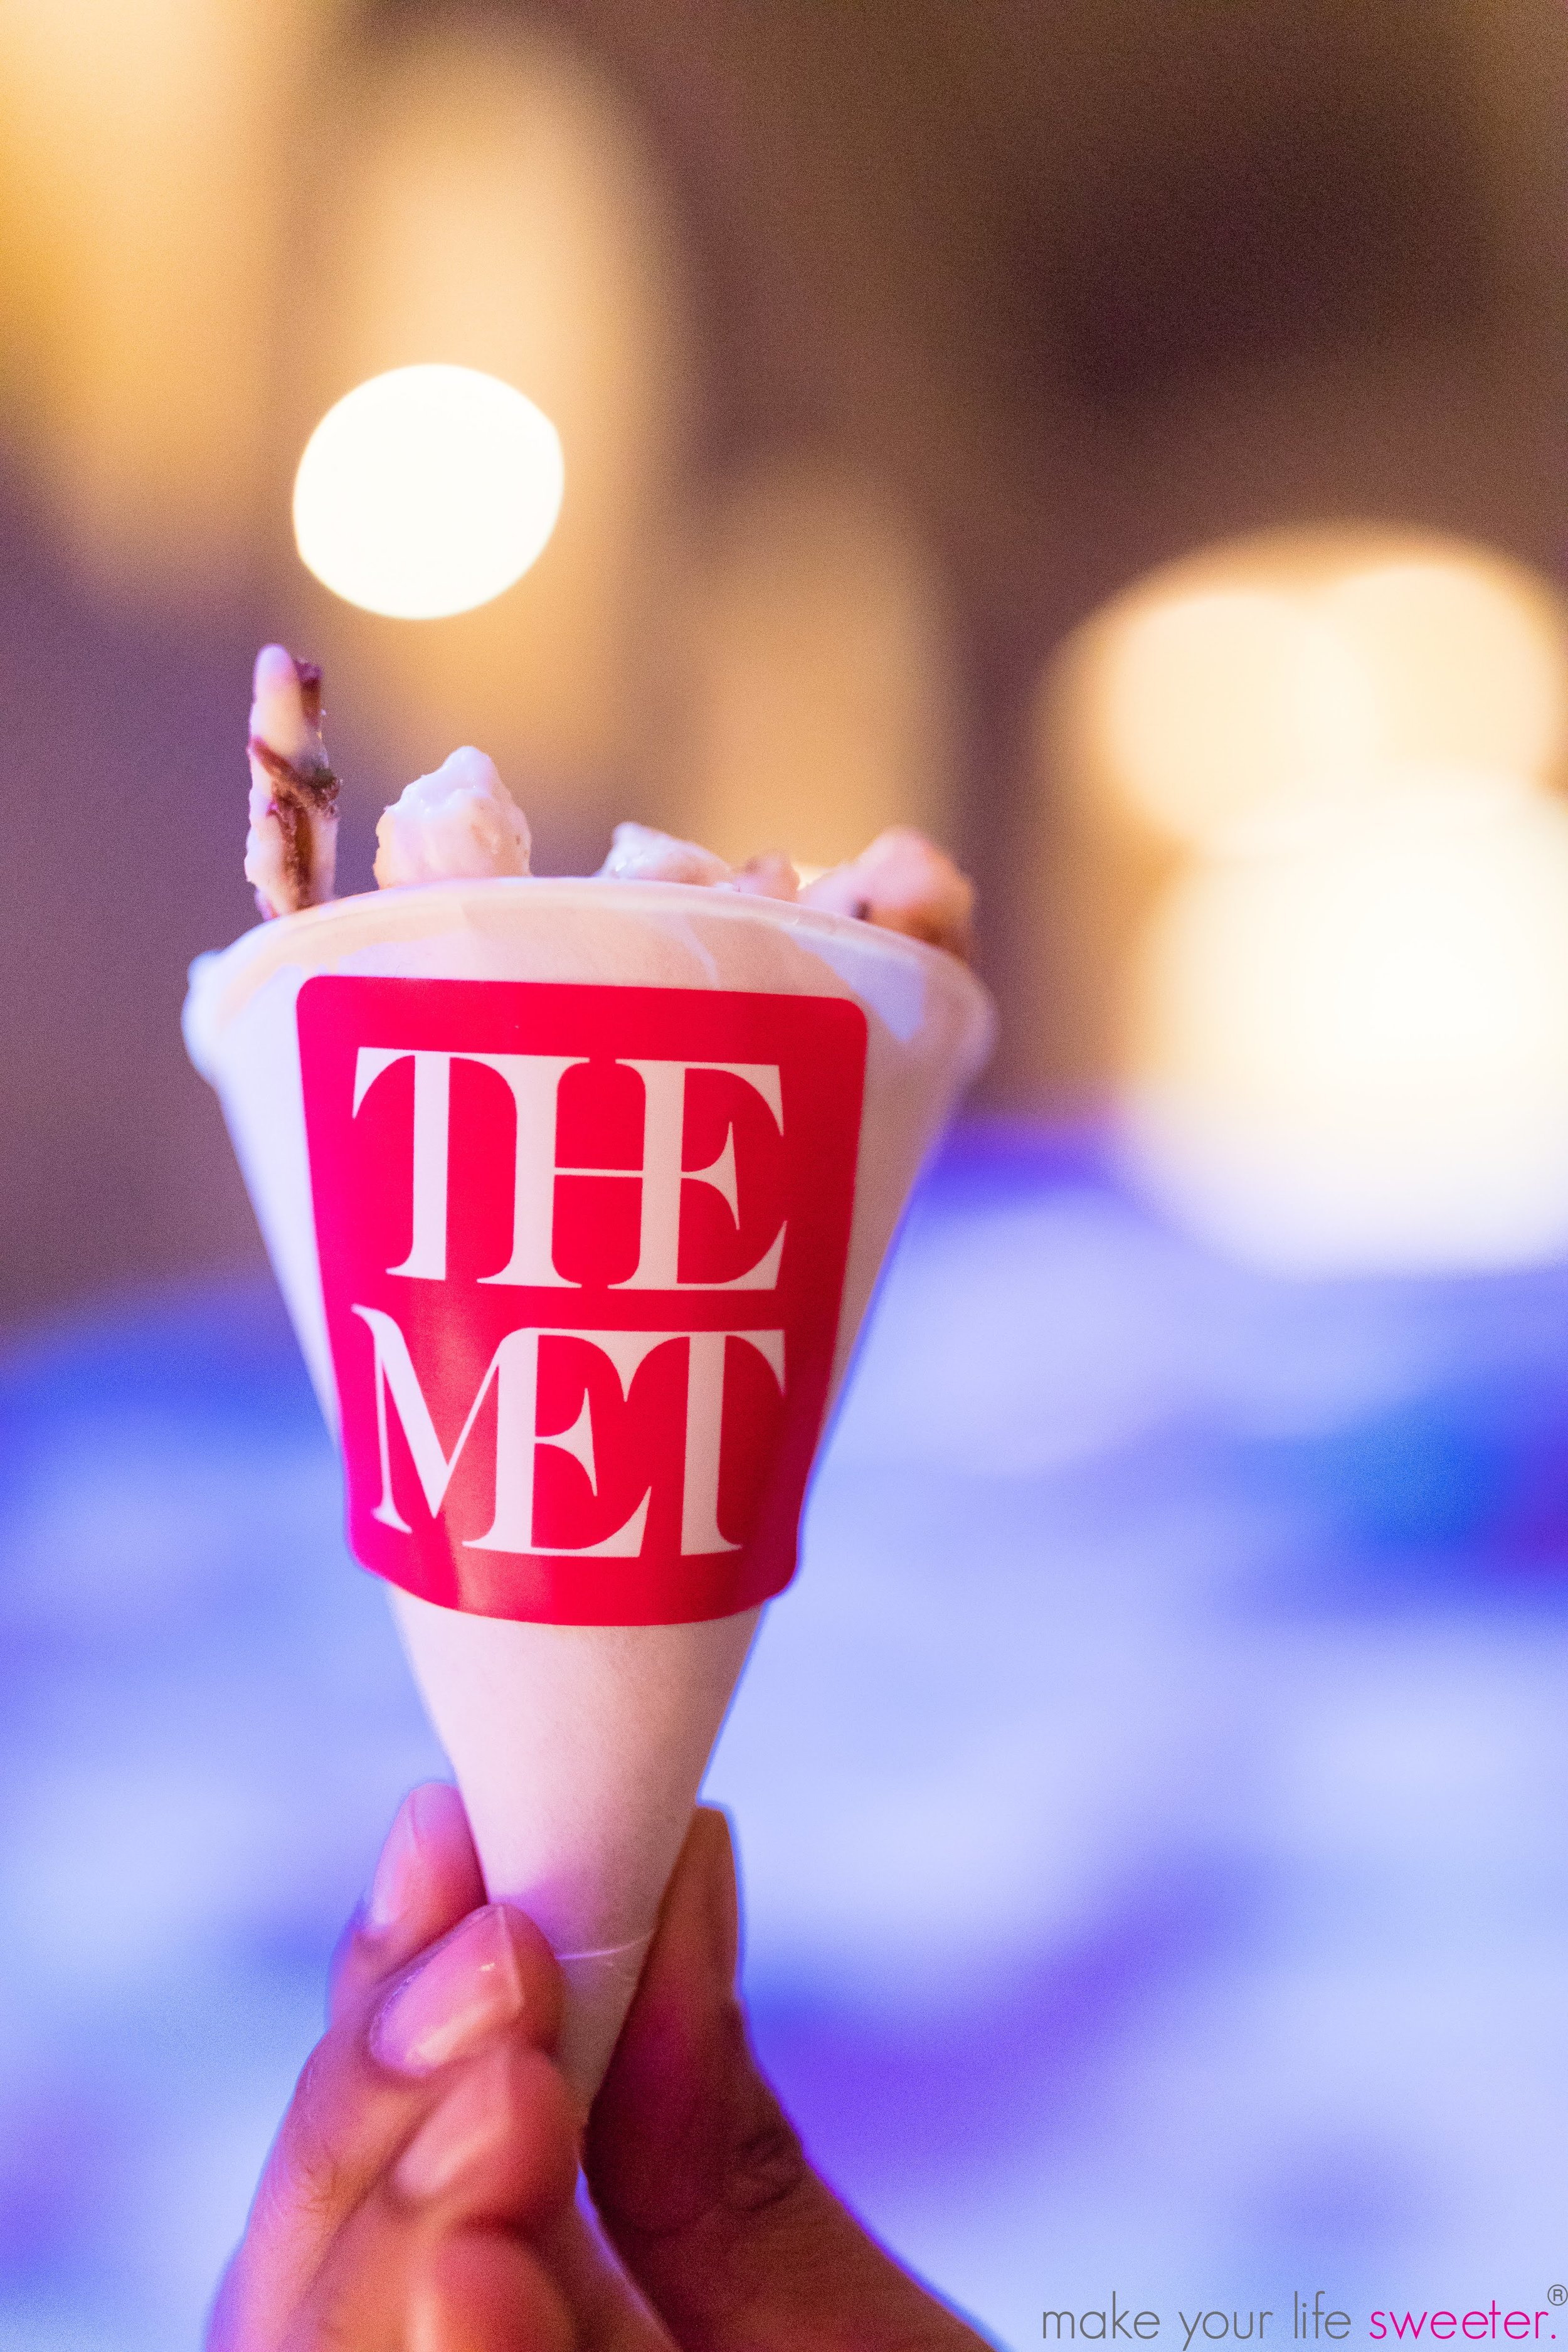 Make Your Life Sweeter Events - The Met Member Holiday Party: HotPoppin Gourmet Popcorn with Customized cones